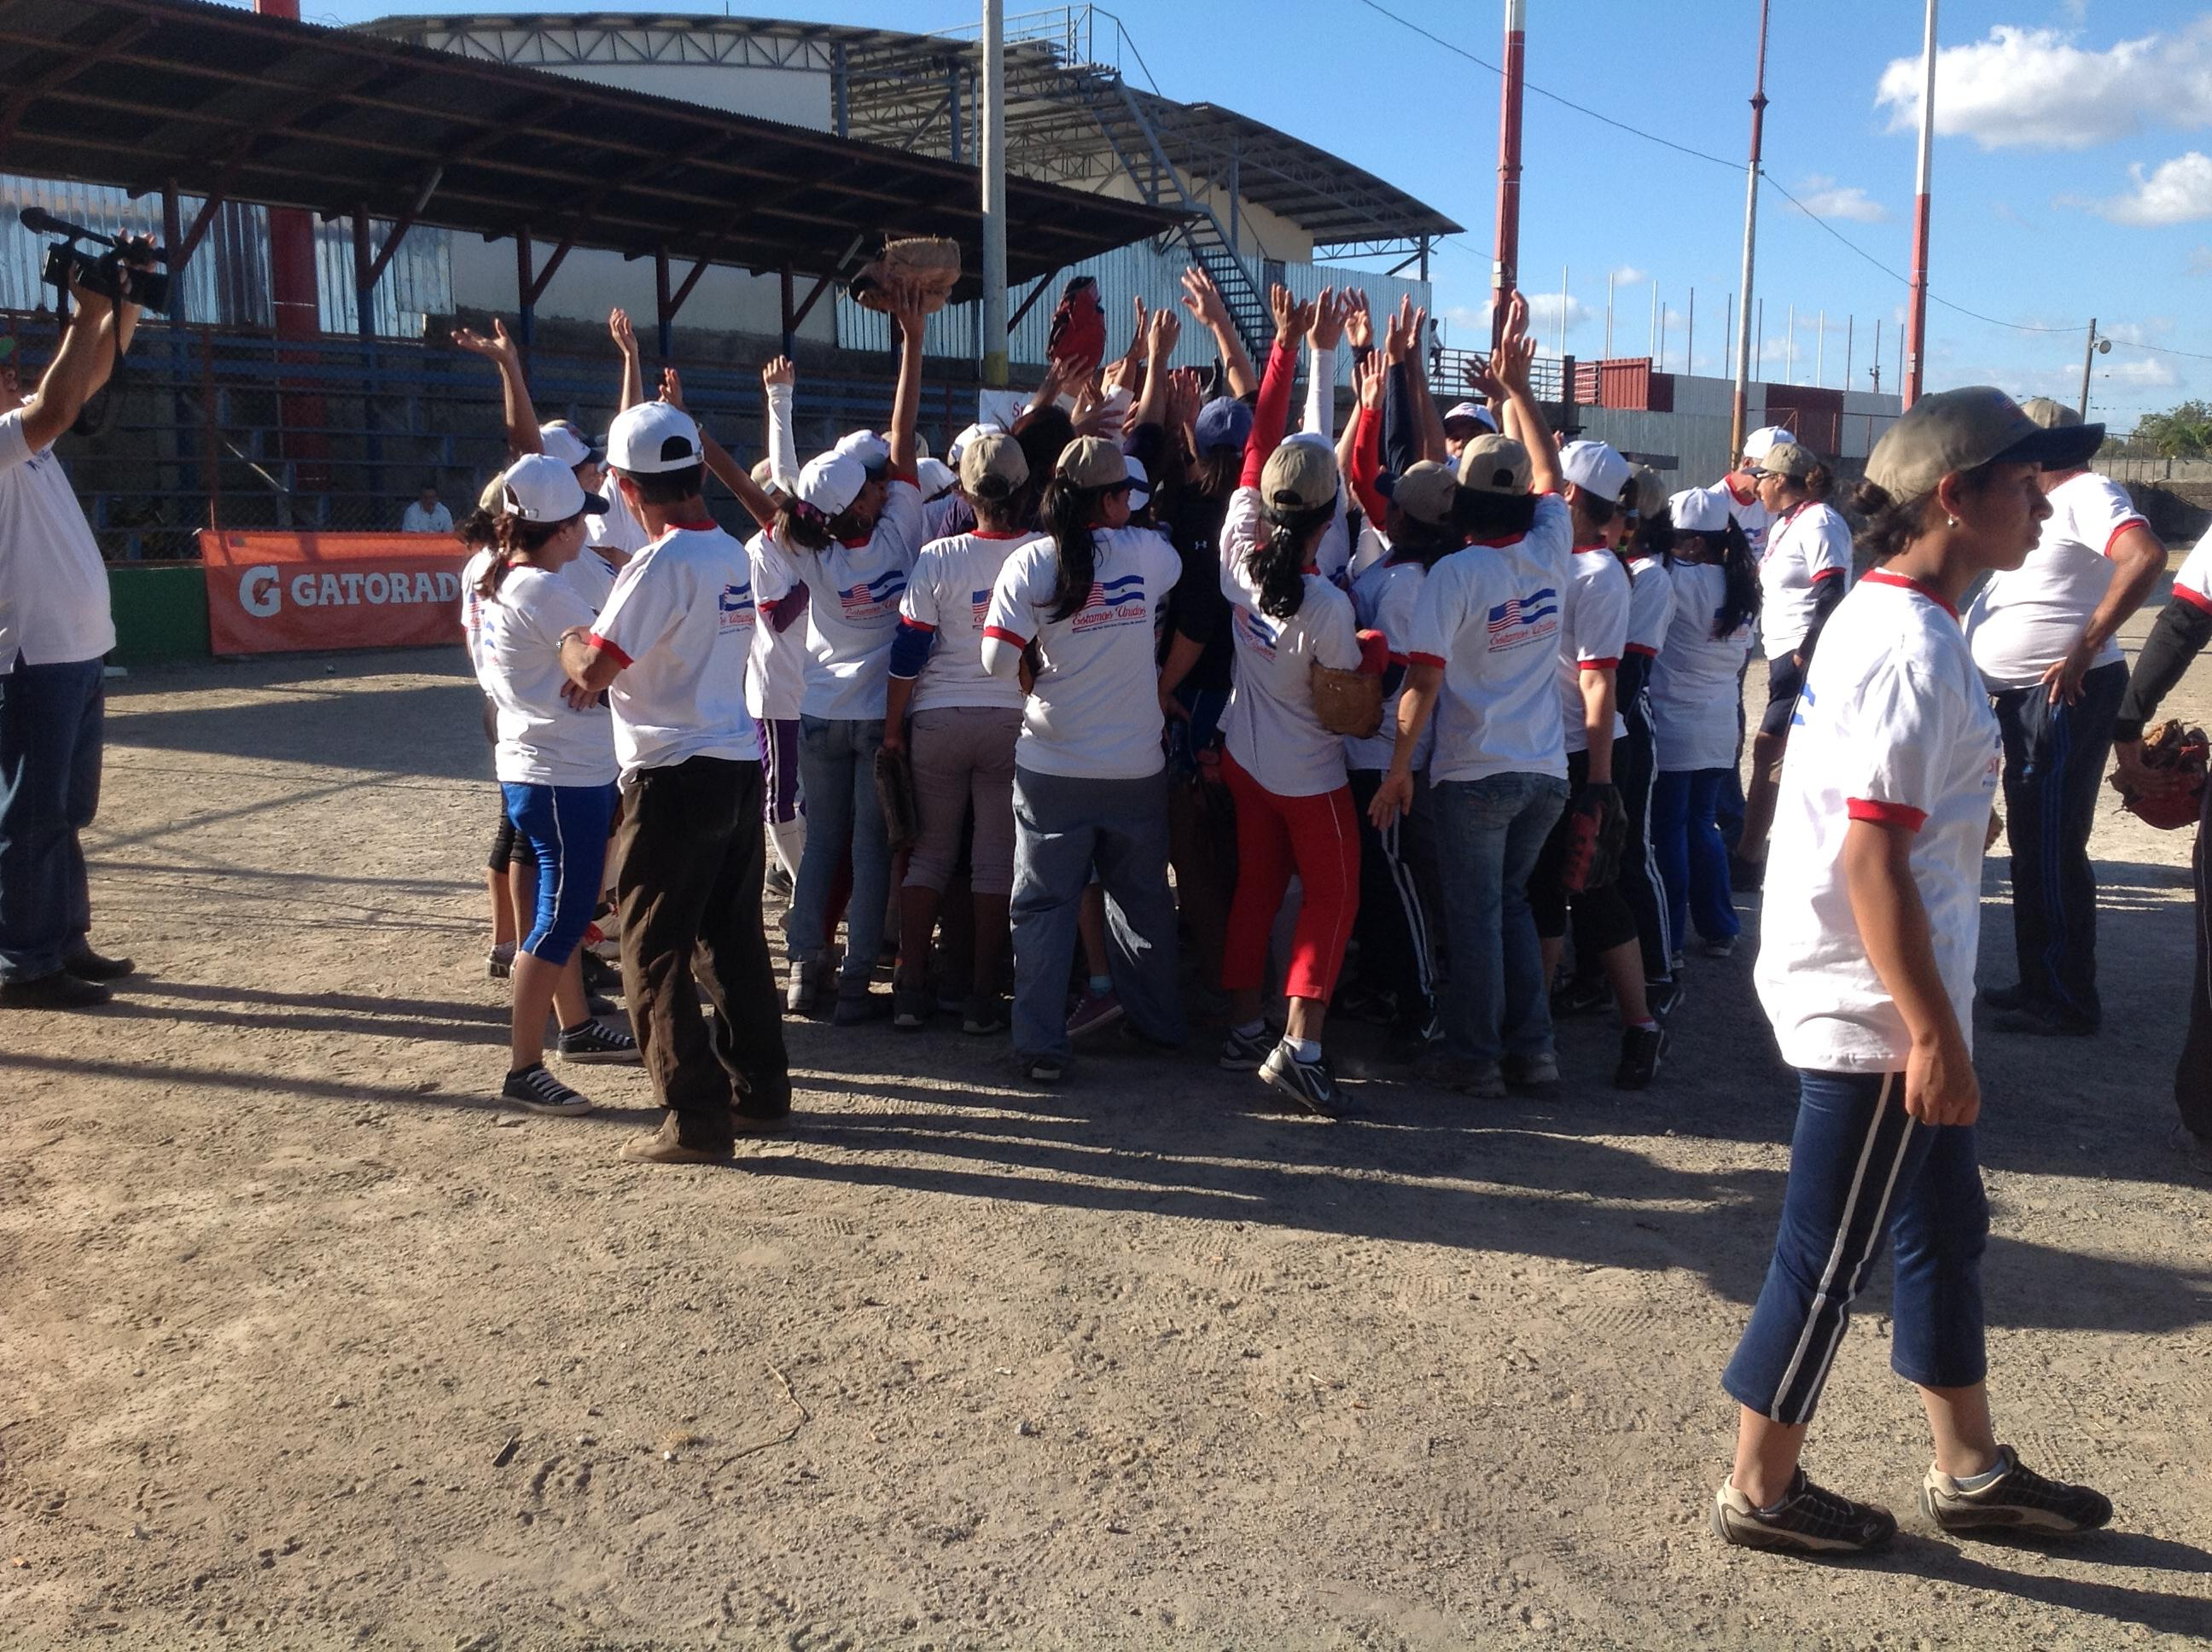 After an invigorating game, Nicaraguan players celebrate the sport of softball with a group cheer.